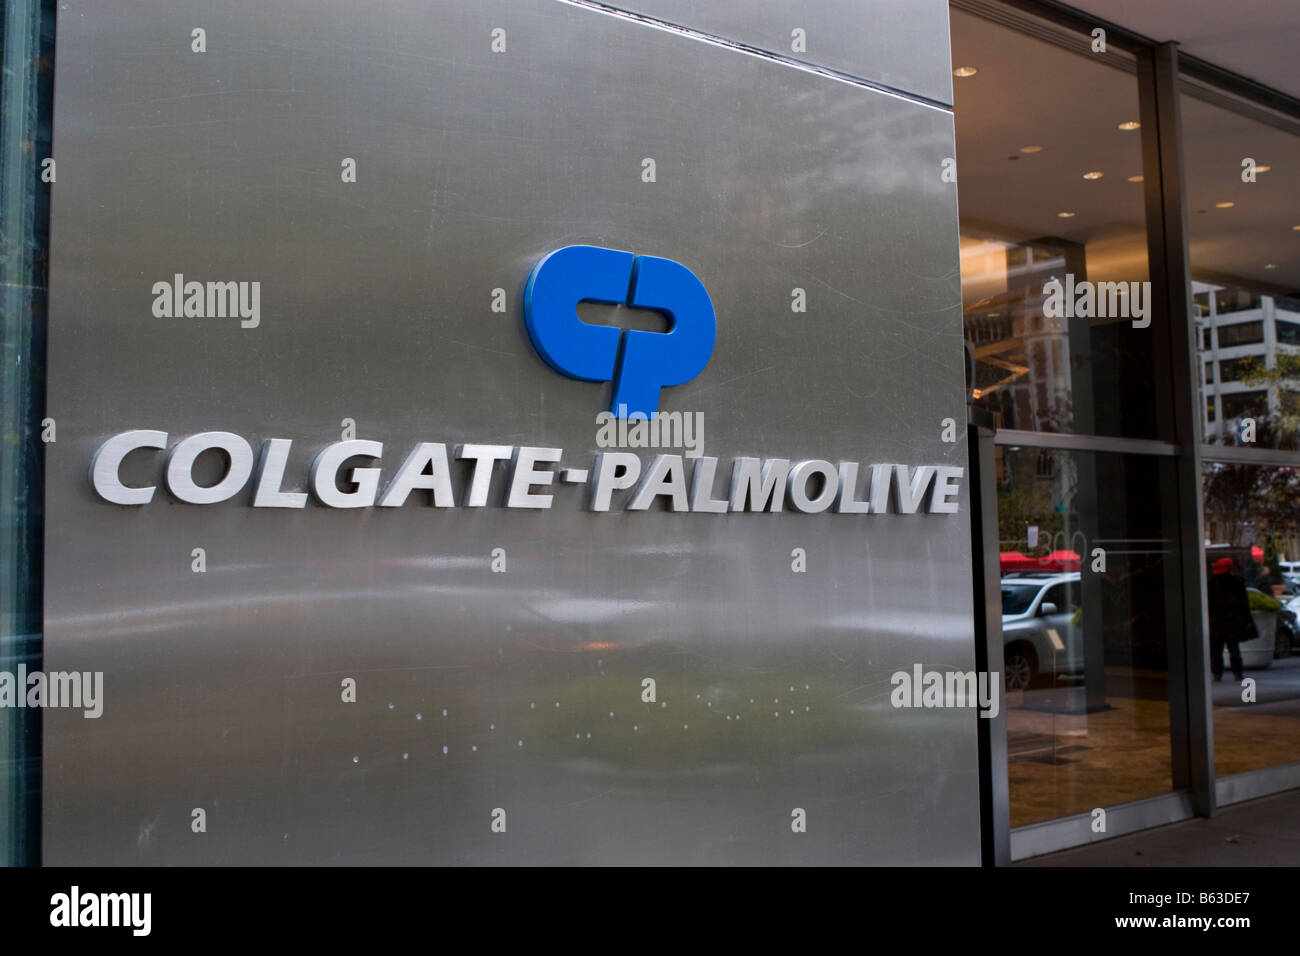 where is colgate palmolive located